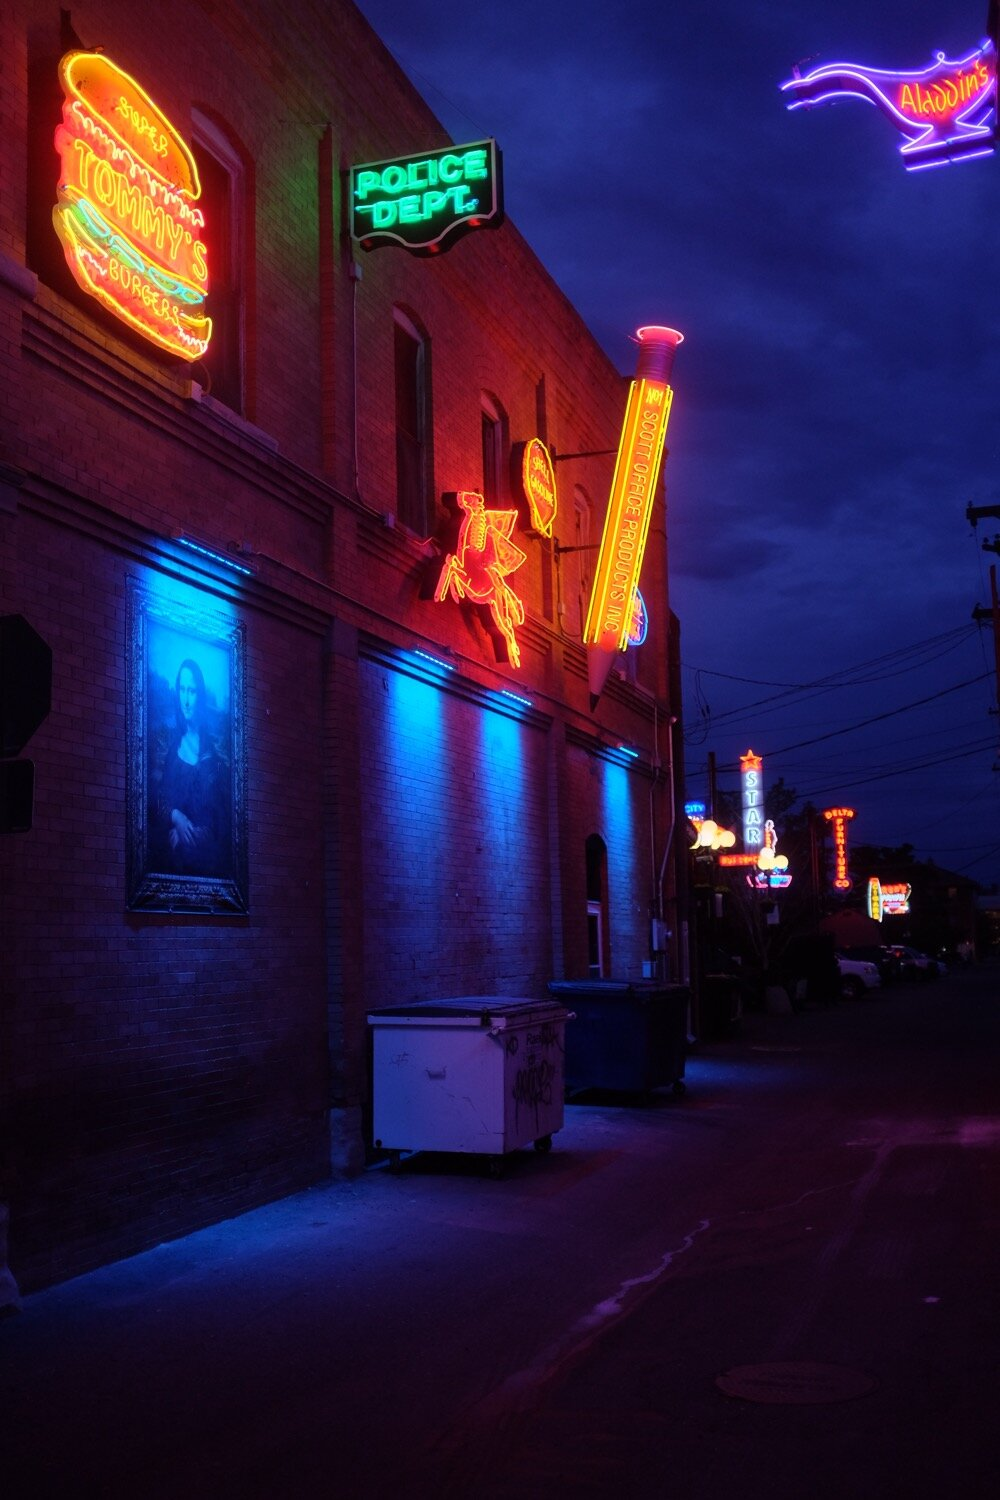 Gorgeous neon signs.